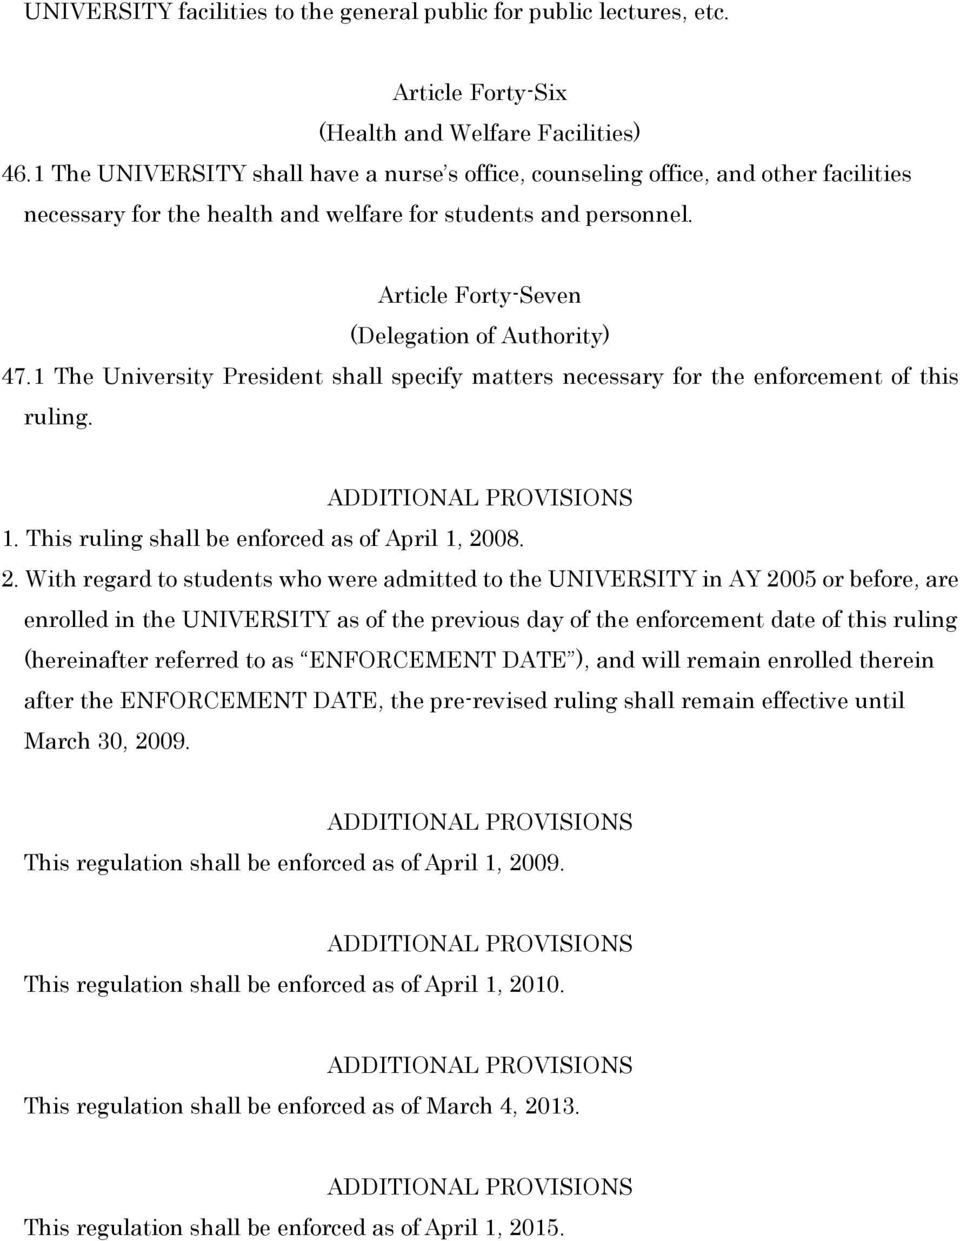 1 The University President shall specify matters necessary for the enforcement of this ruling. ADDITIONAL PROVISIONS 1. This ruling shall be enforced as of April 1, 20